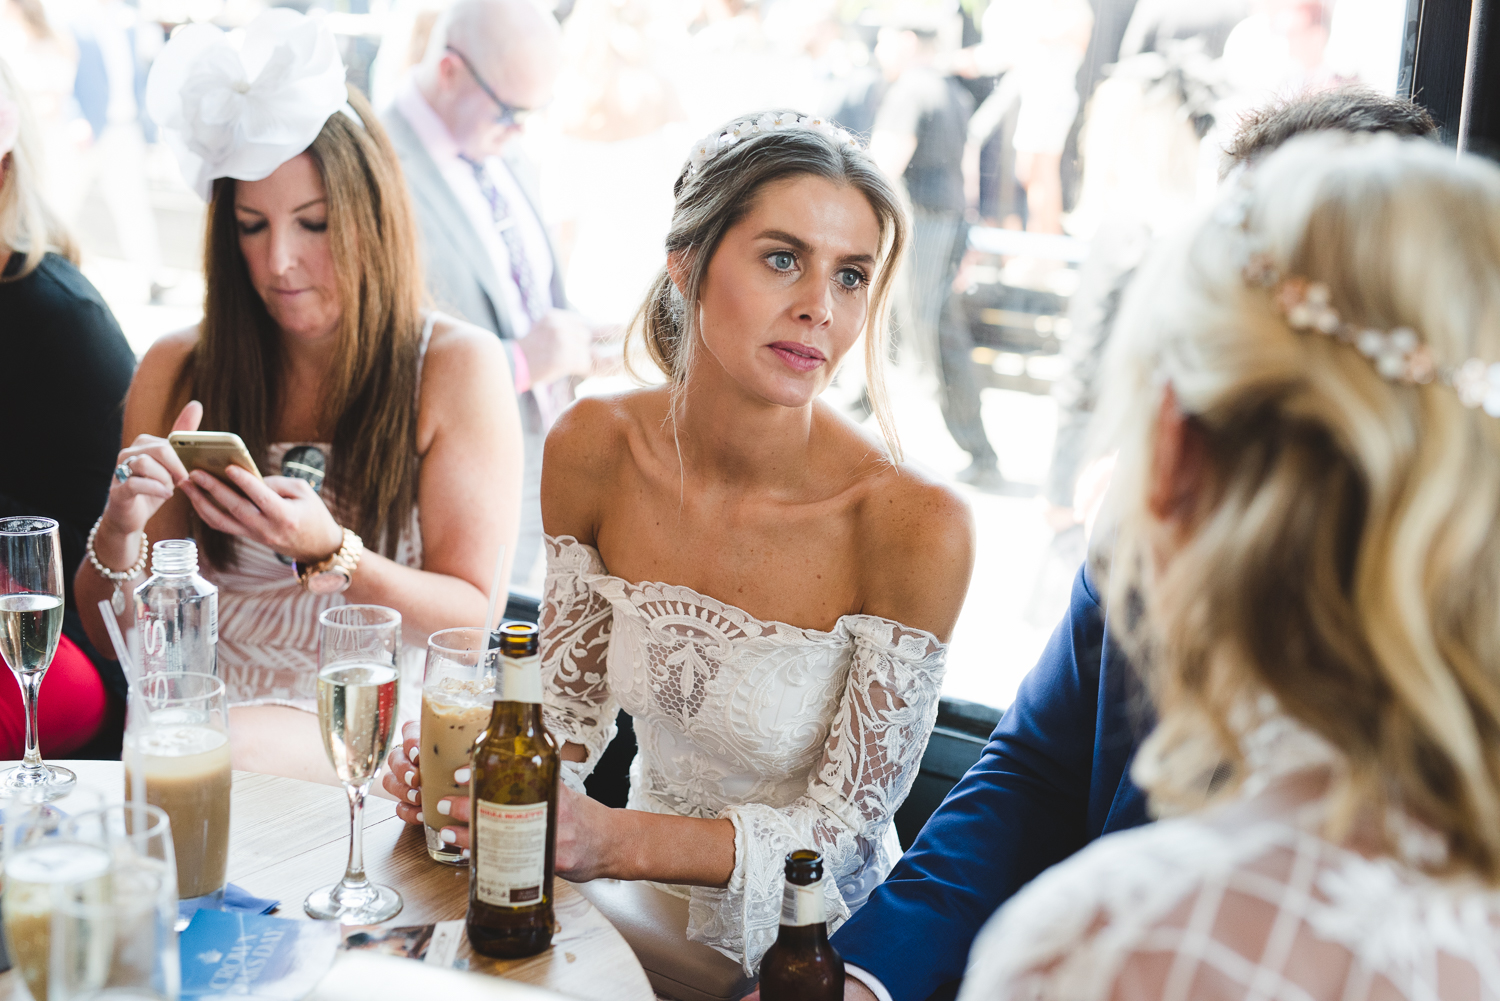 oaks-day-2016-spring-racing_124